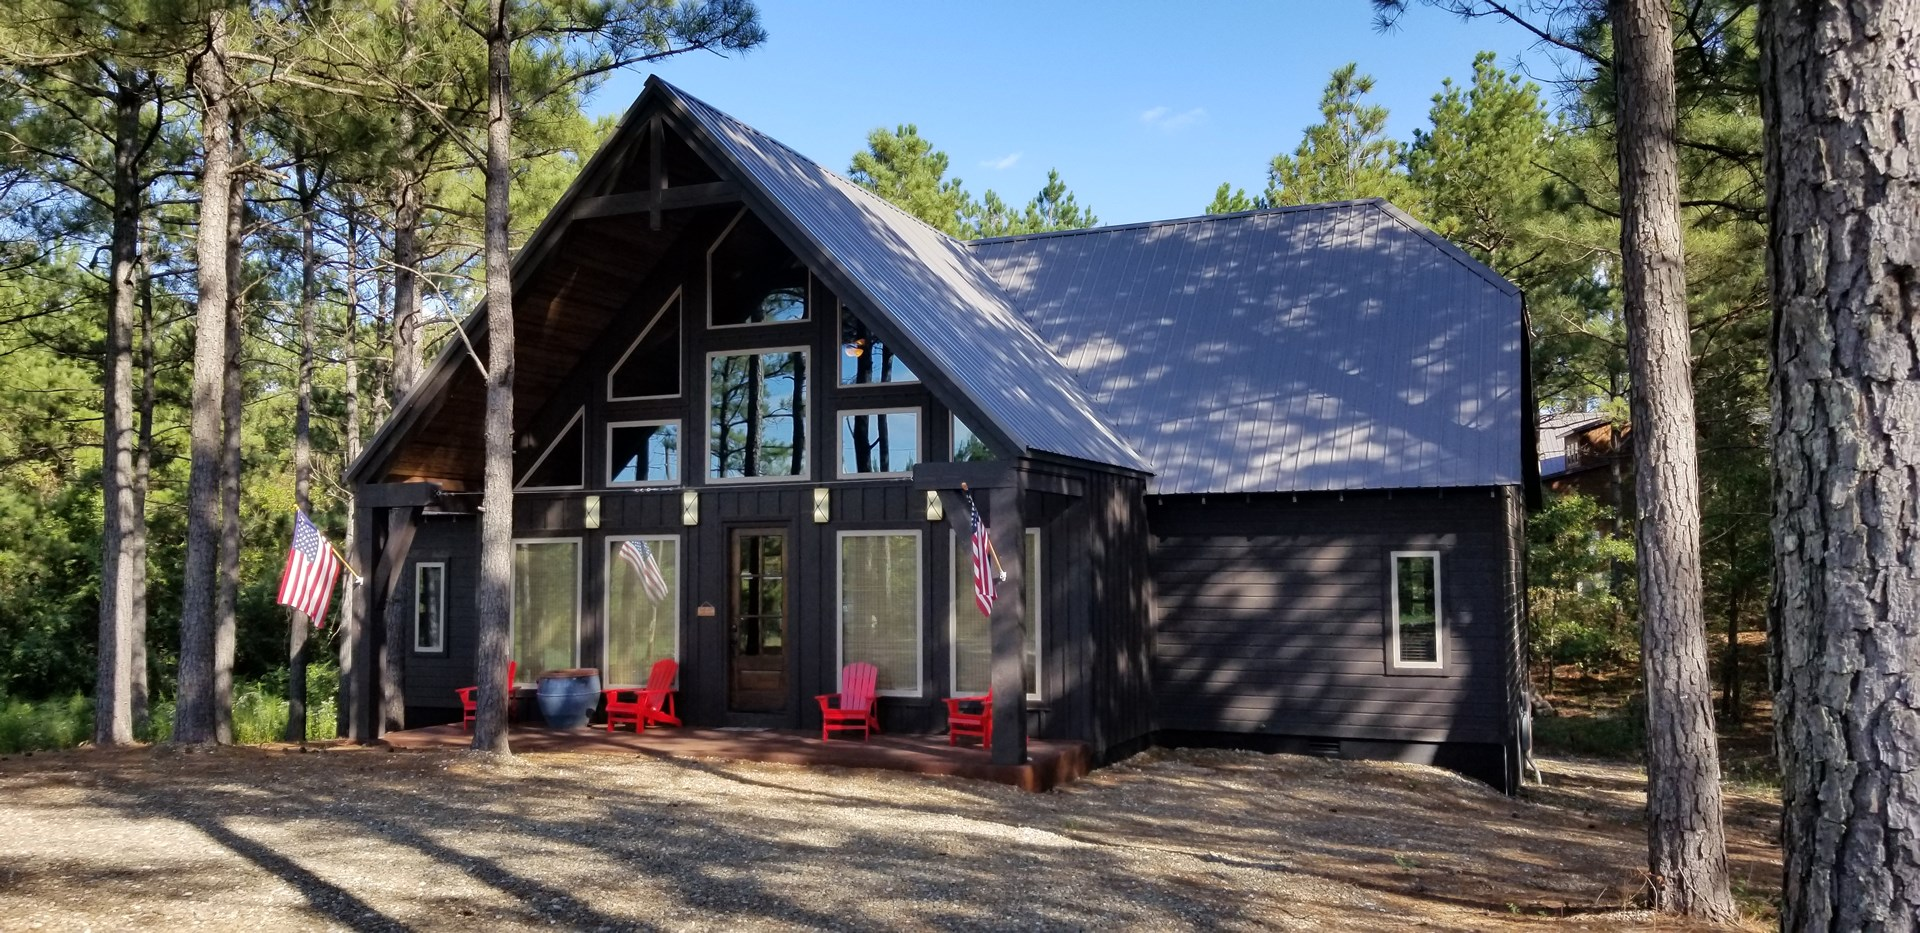 Expired Vacation Cabin For Sale In Broken Bow Hochatown